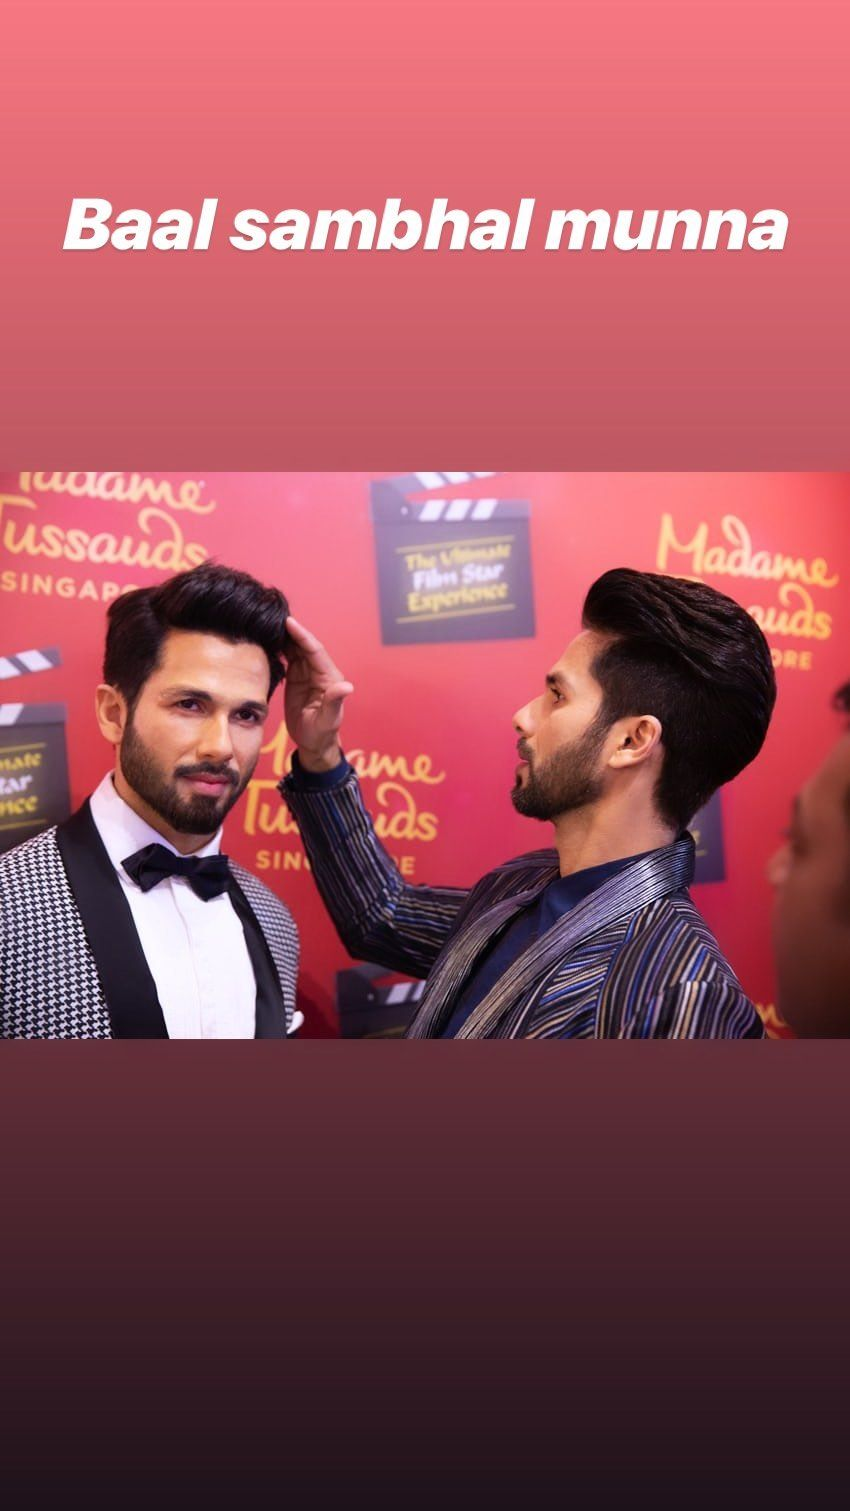 Shahid Kapoor mother, Shahid Kapoor movies, Shahid Kapoor wife, Shahid Kapoor brother, Shahid Kapoor family, Shahid Kapoor biography, Shahid Kapoor children, Shahid Kapoor son, bollywood news, entertainment news